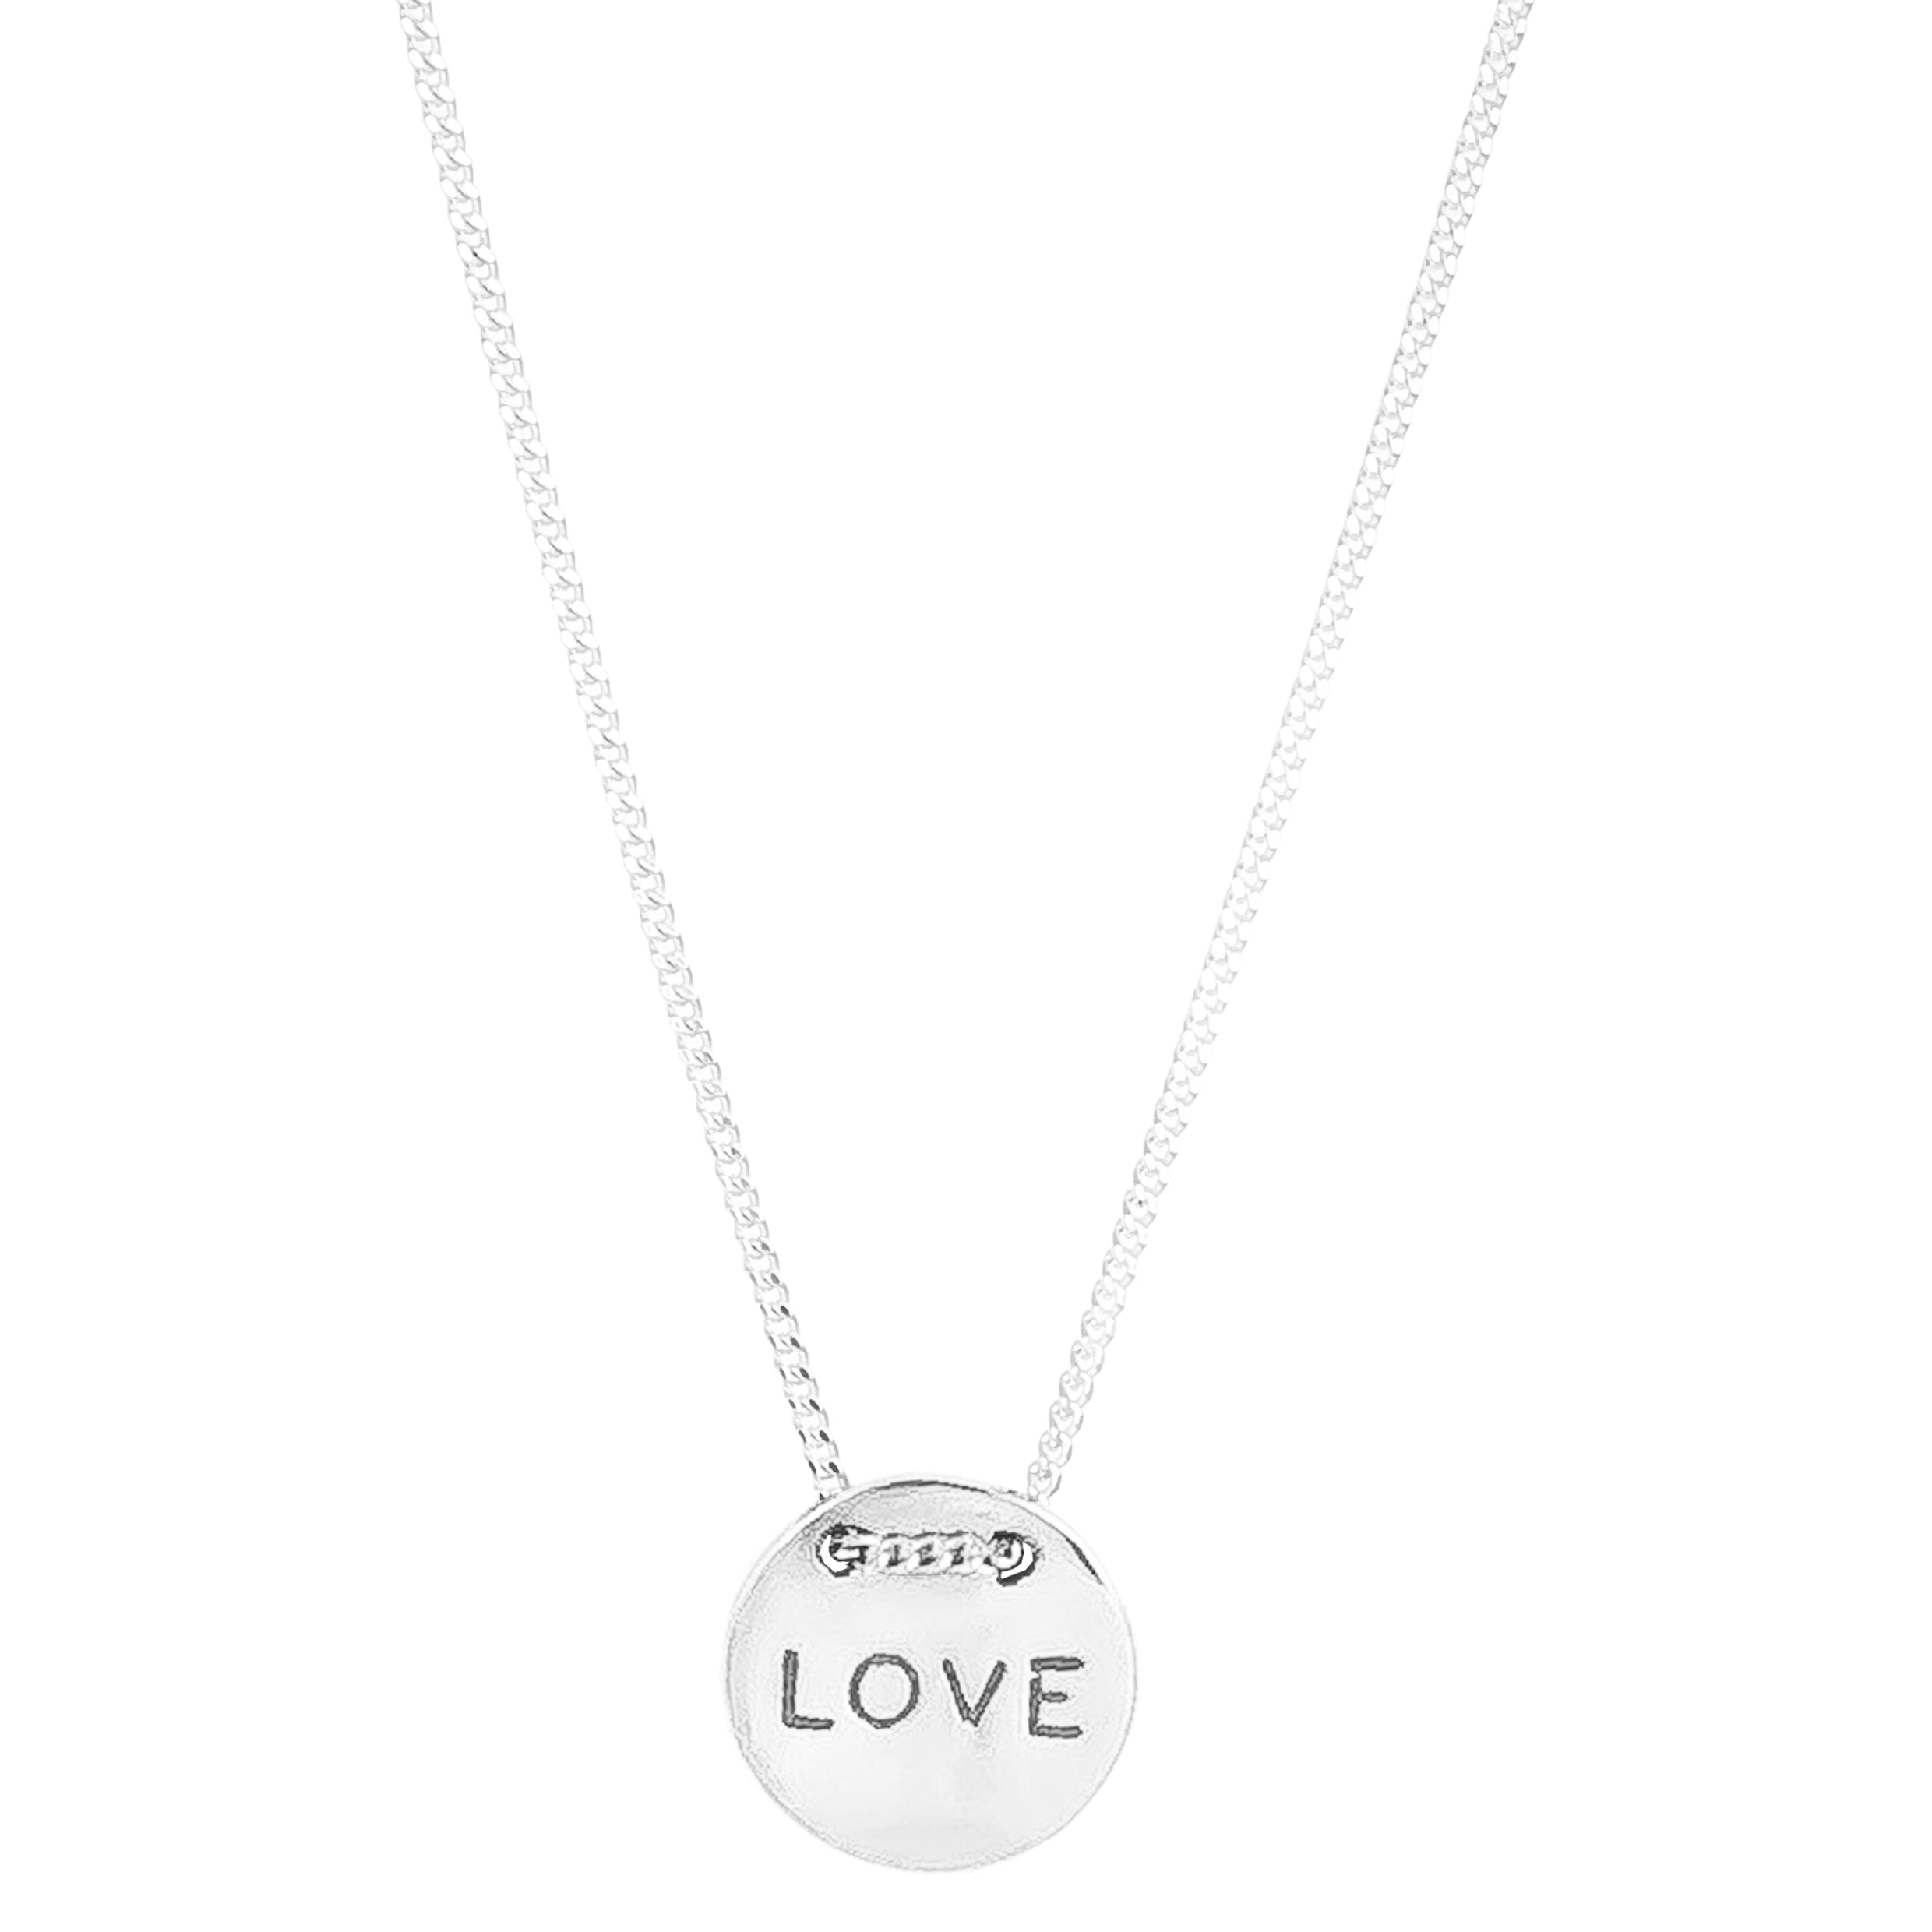 Love Necklace | Silver